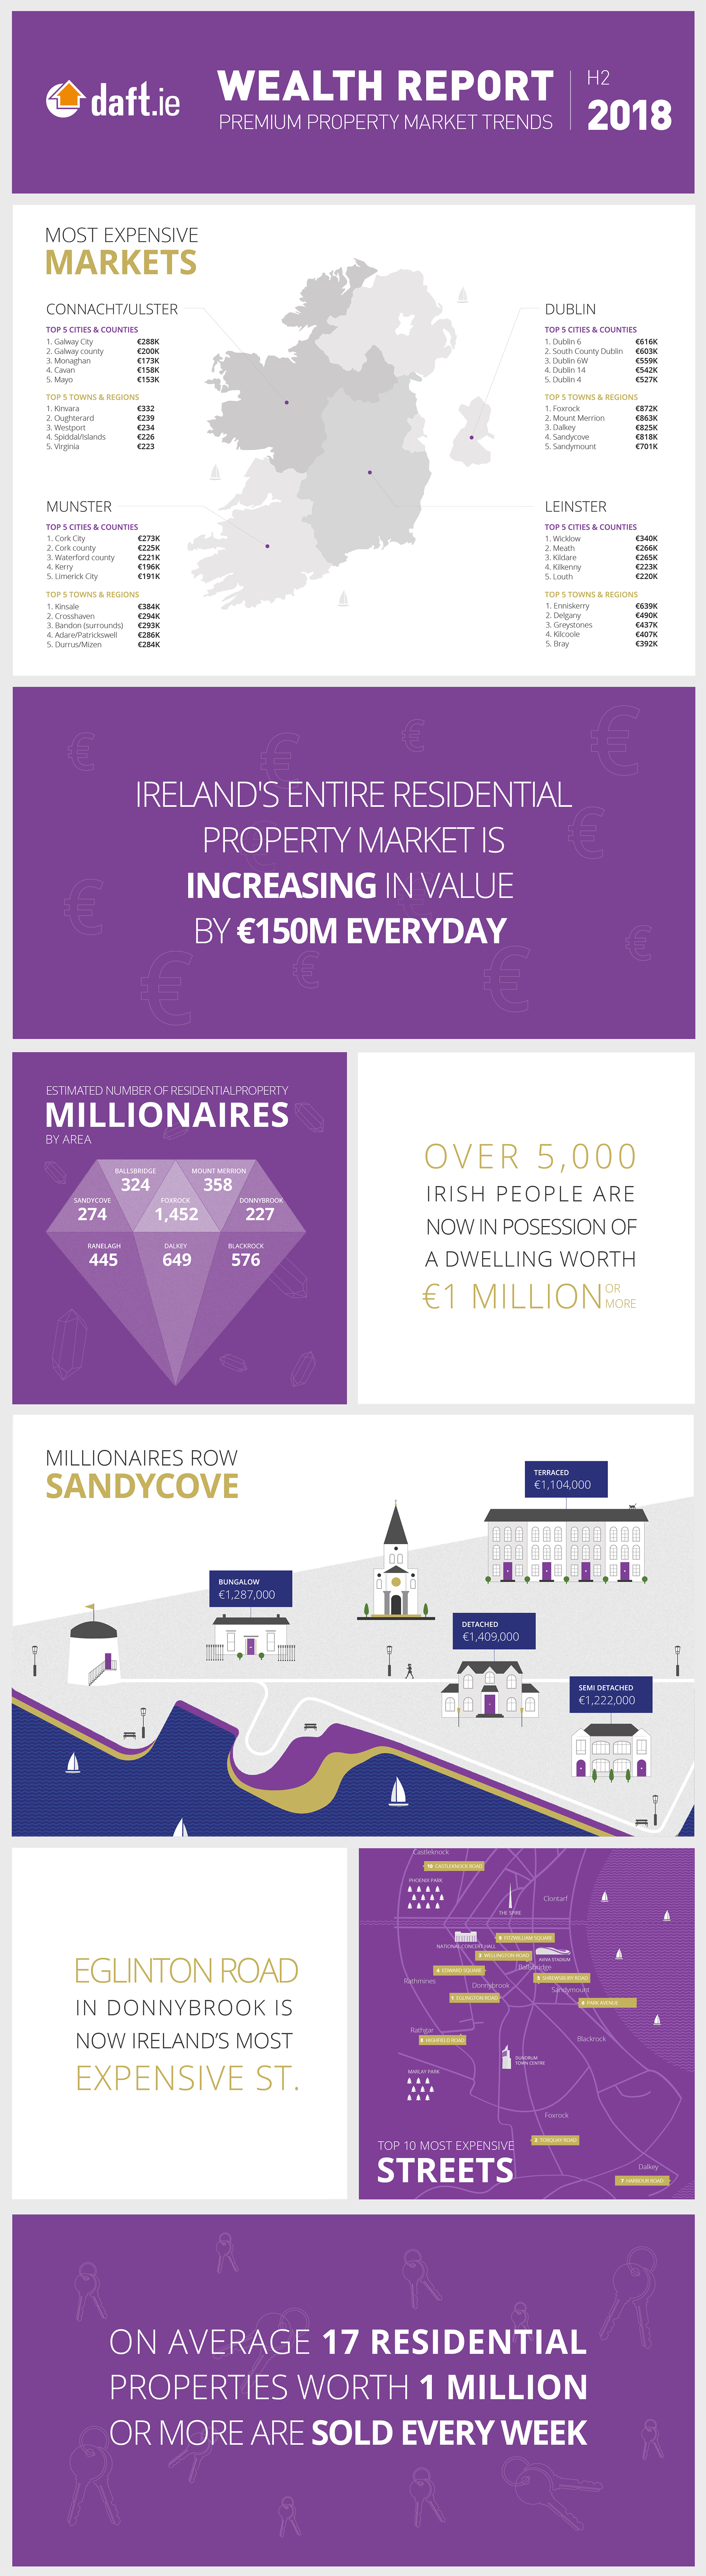 daft-wealth-report-Infographic.jpg